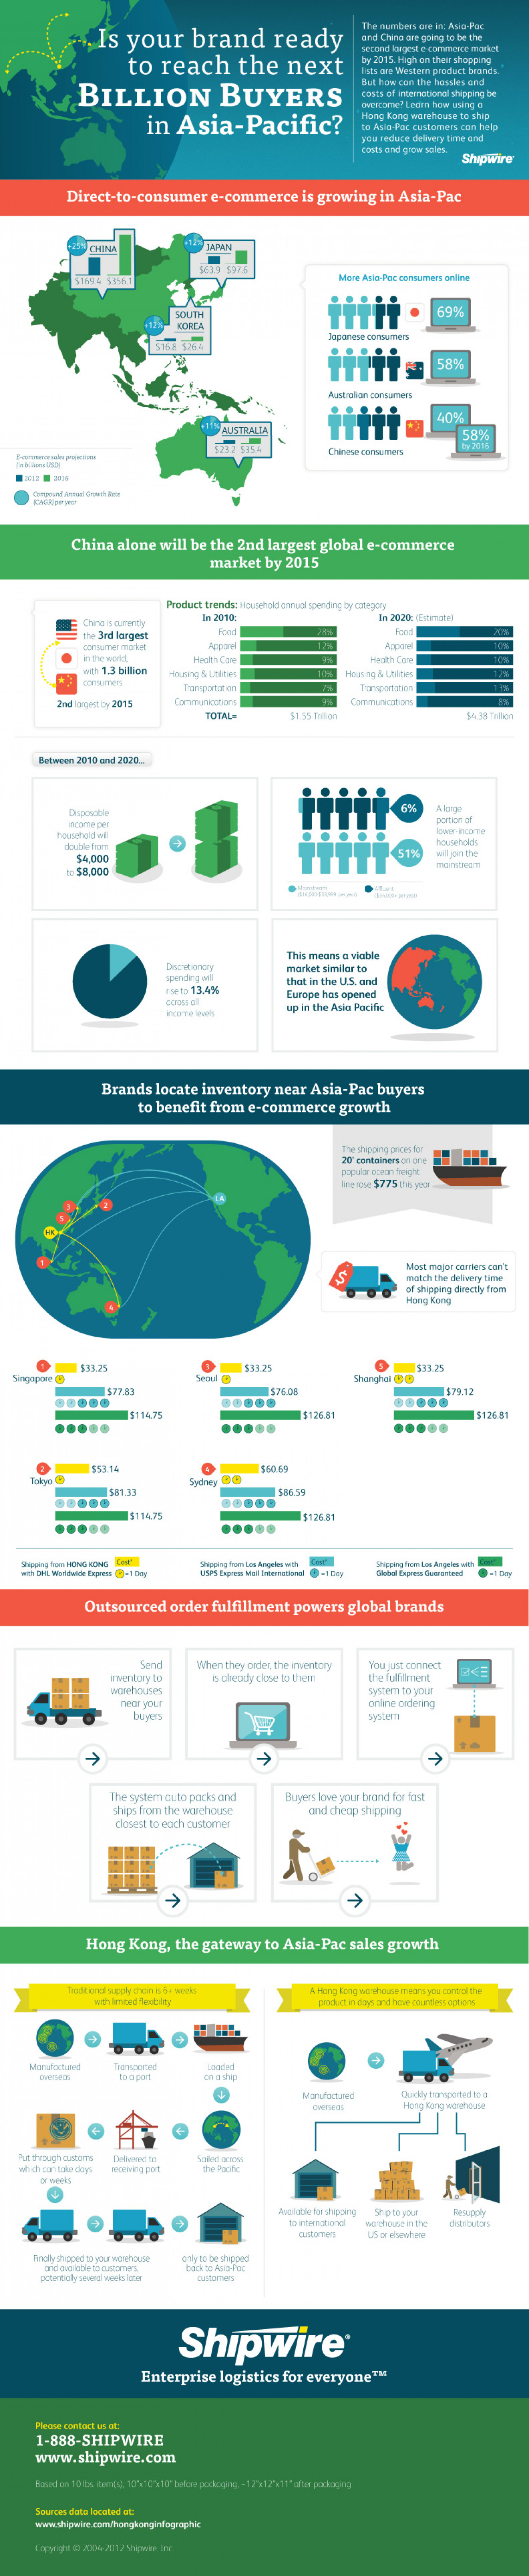 Reaching a Billion Buyers in Hong Kong Infographic